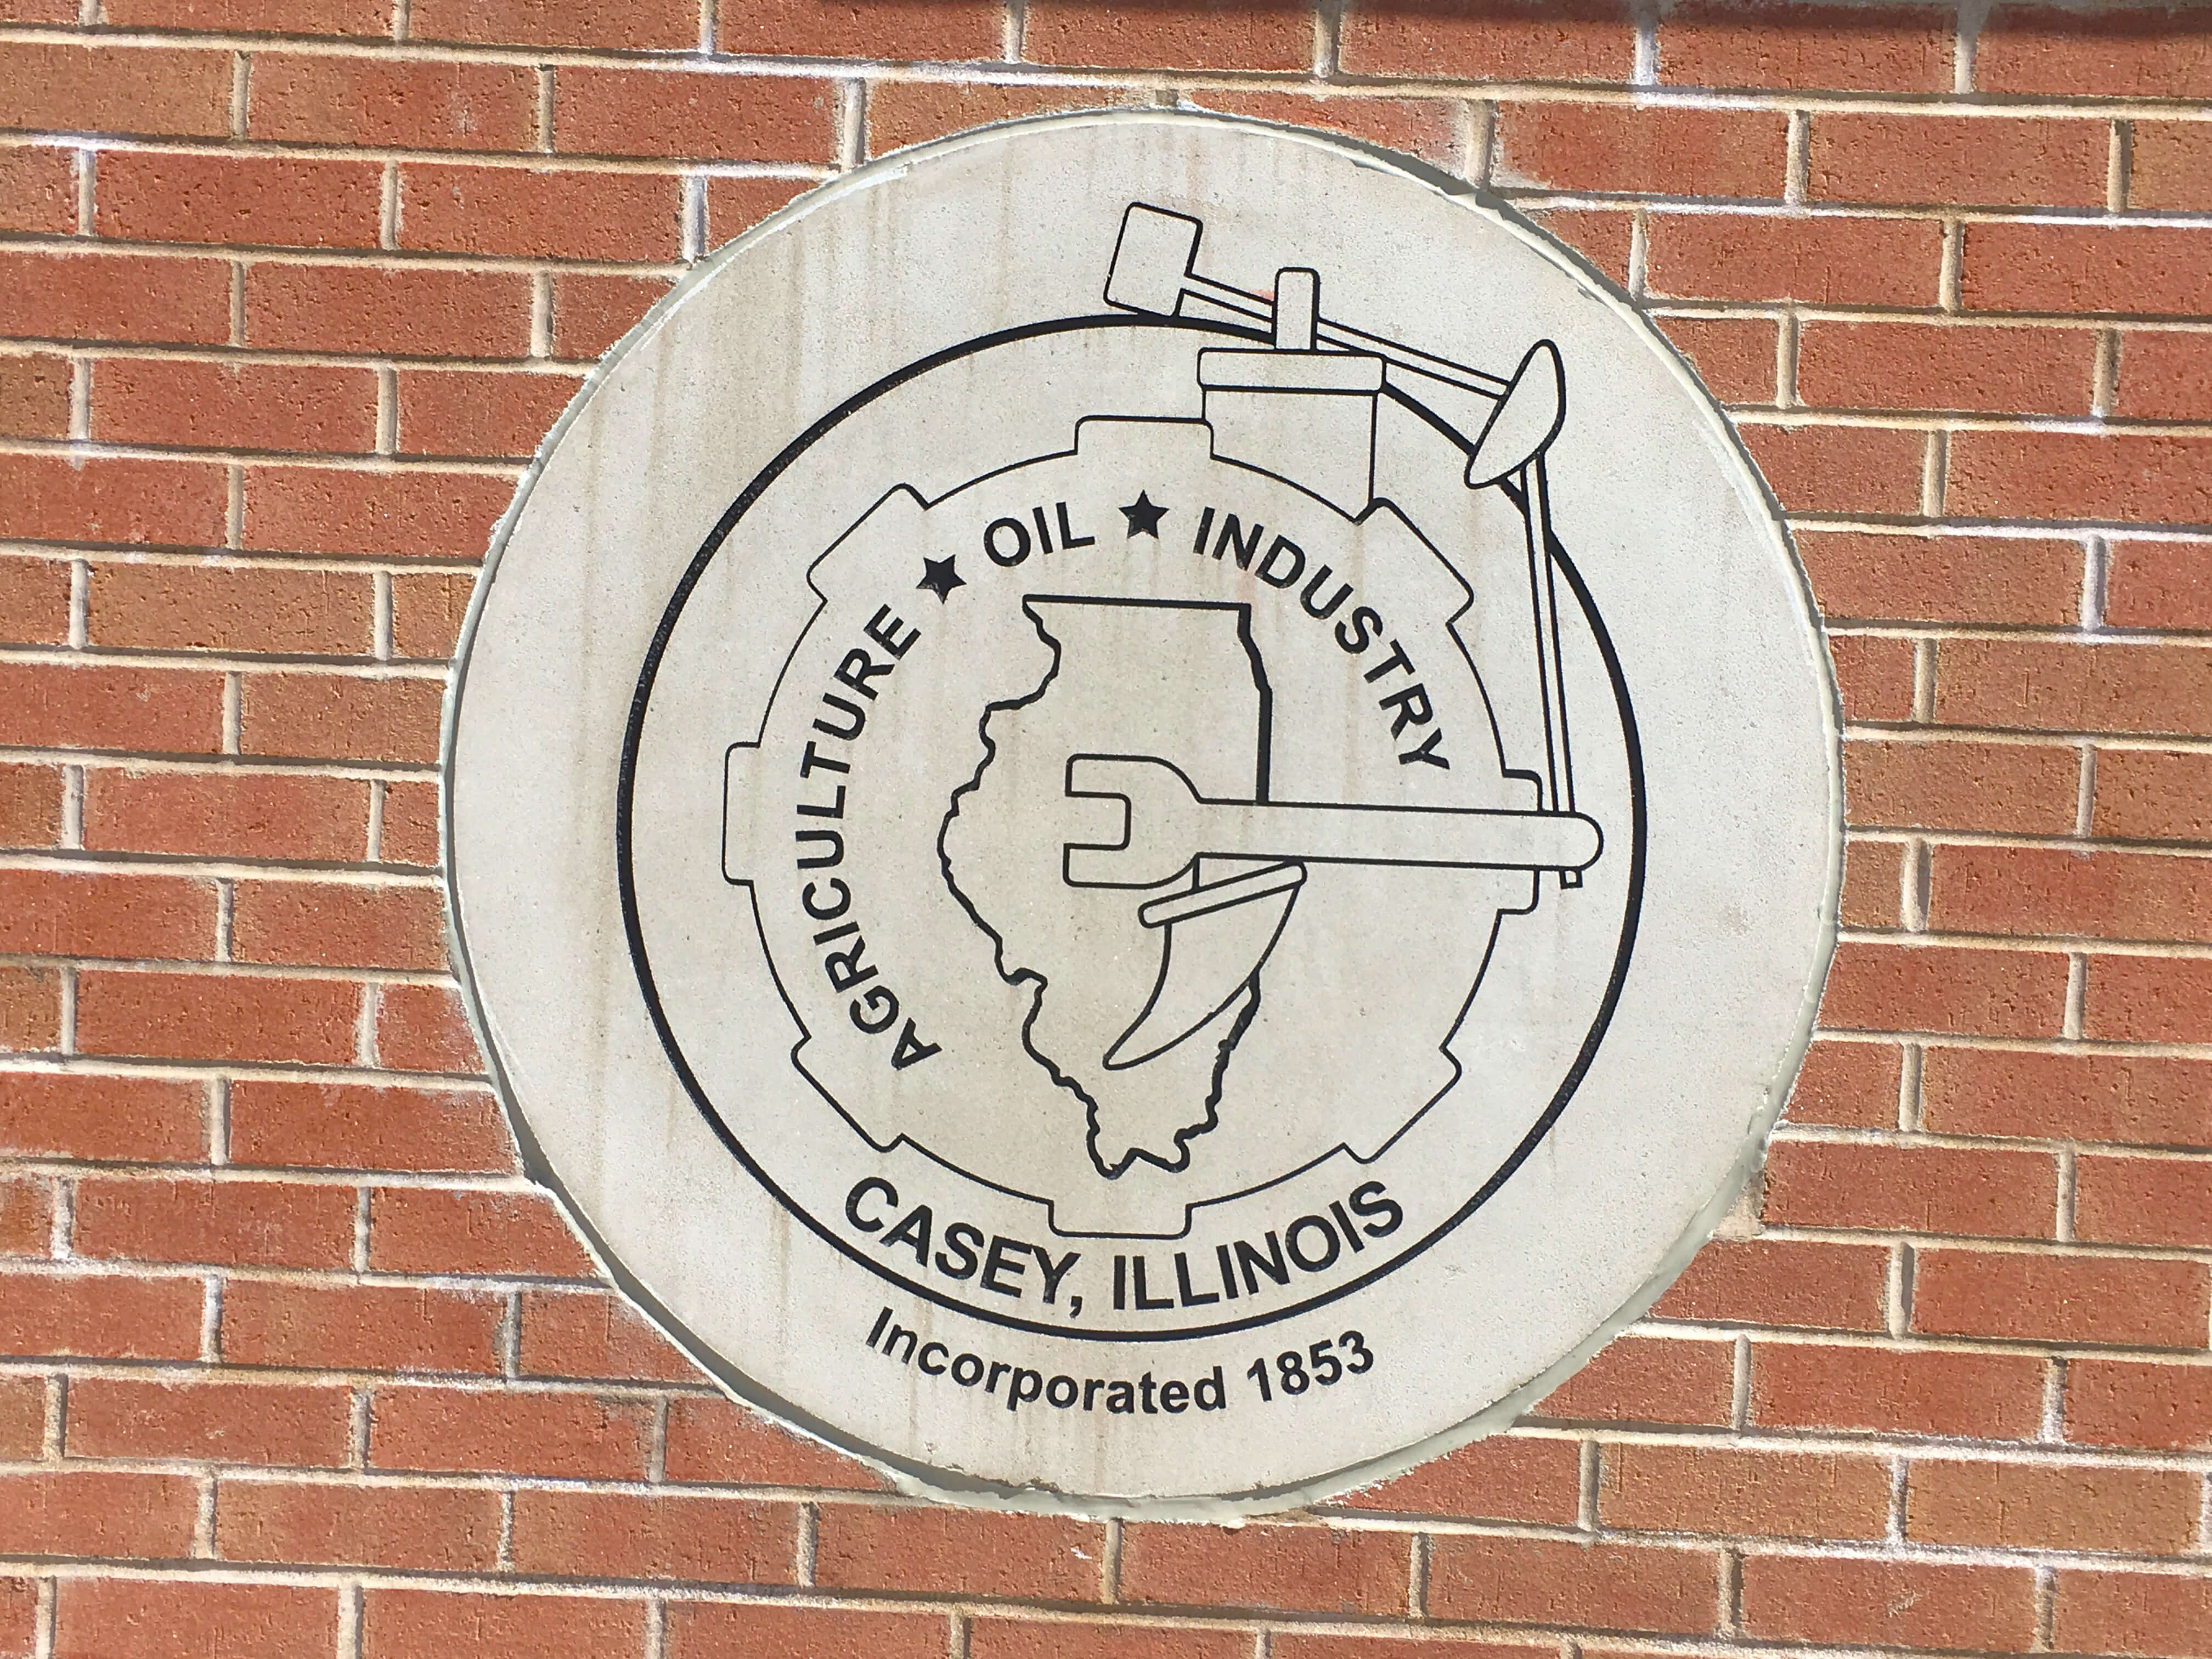 Casey Illinois city seal